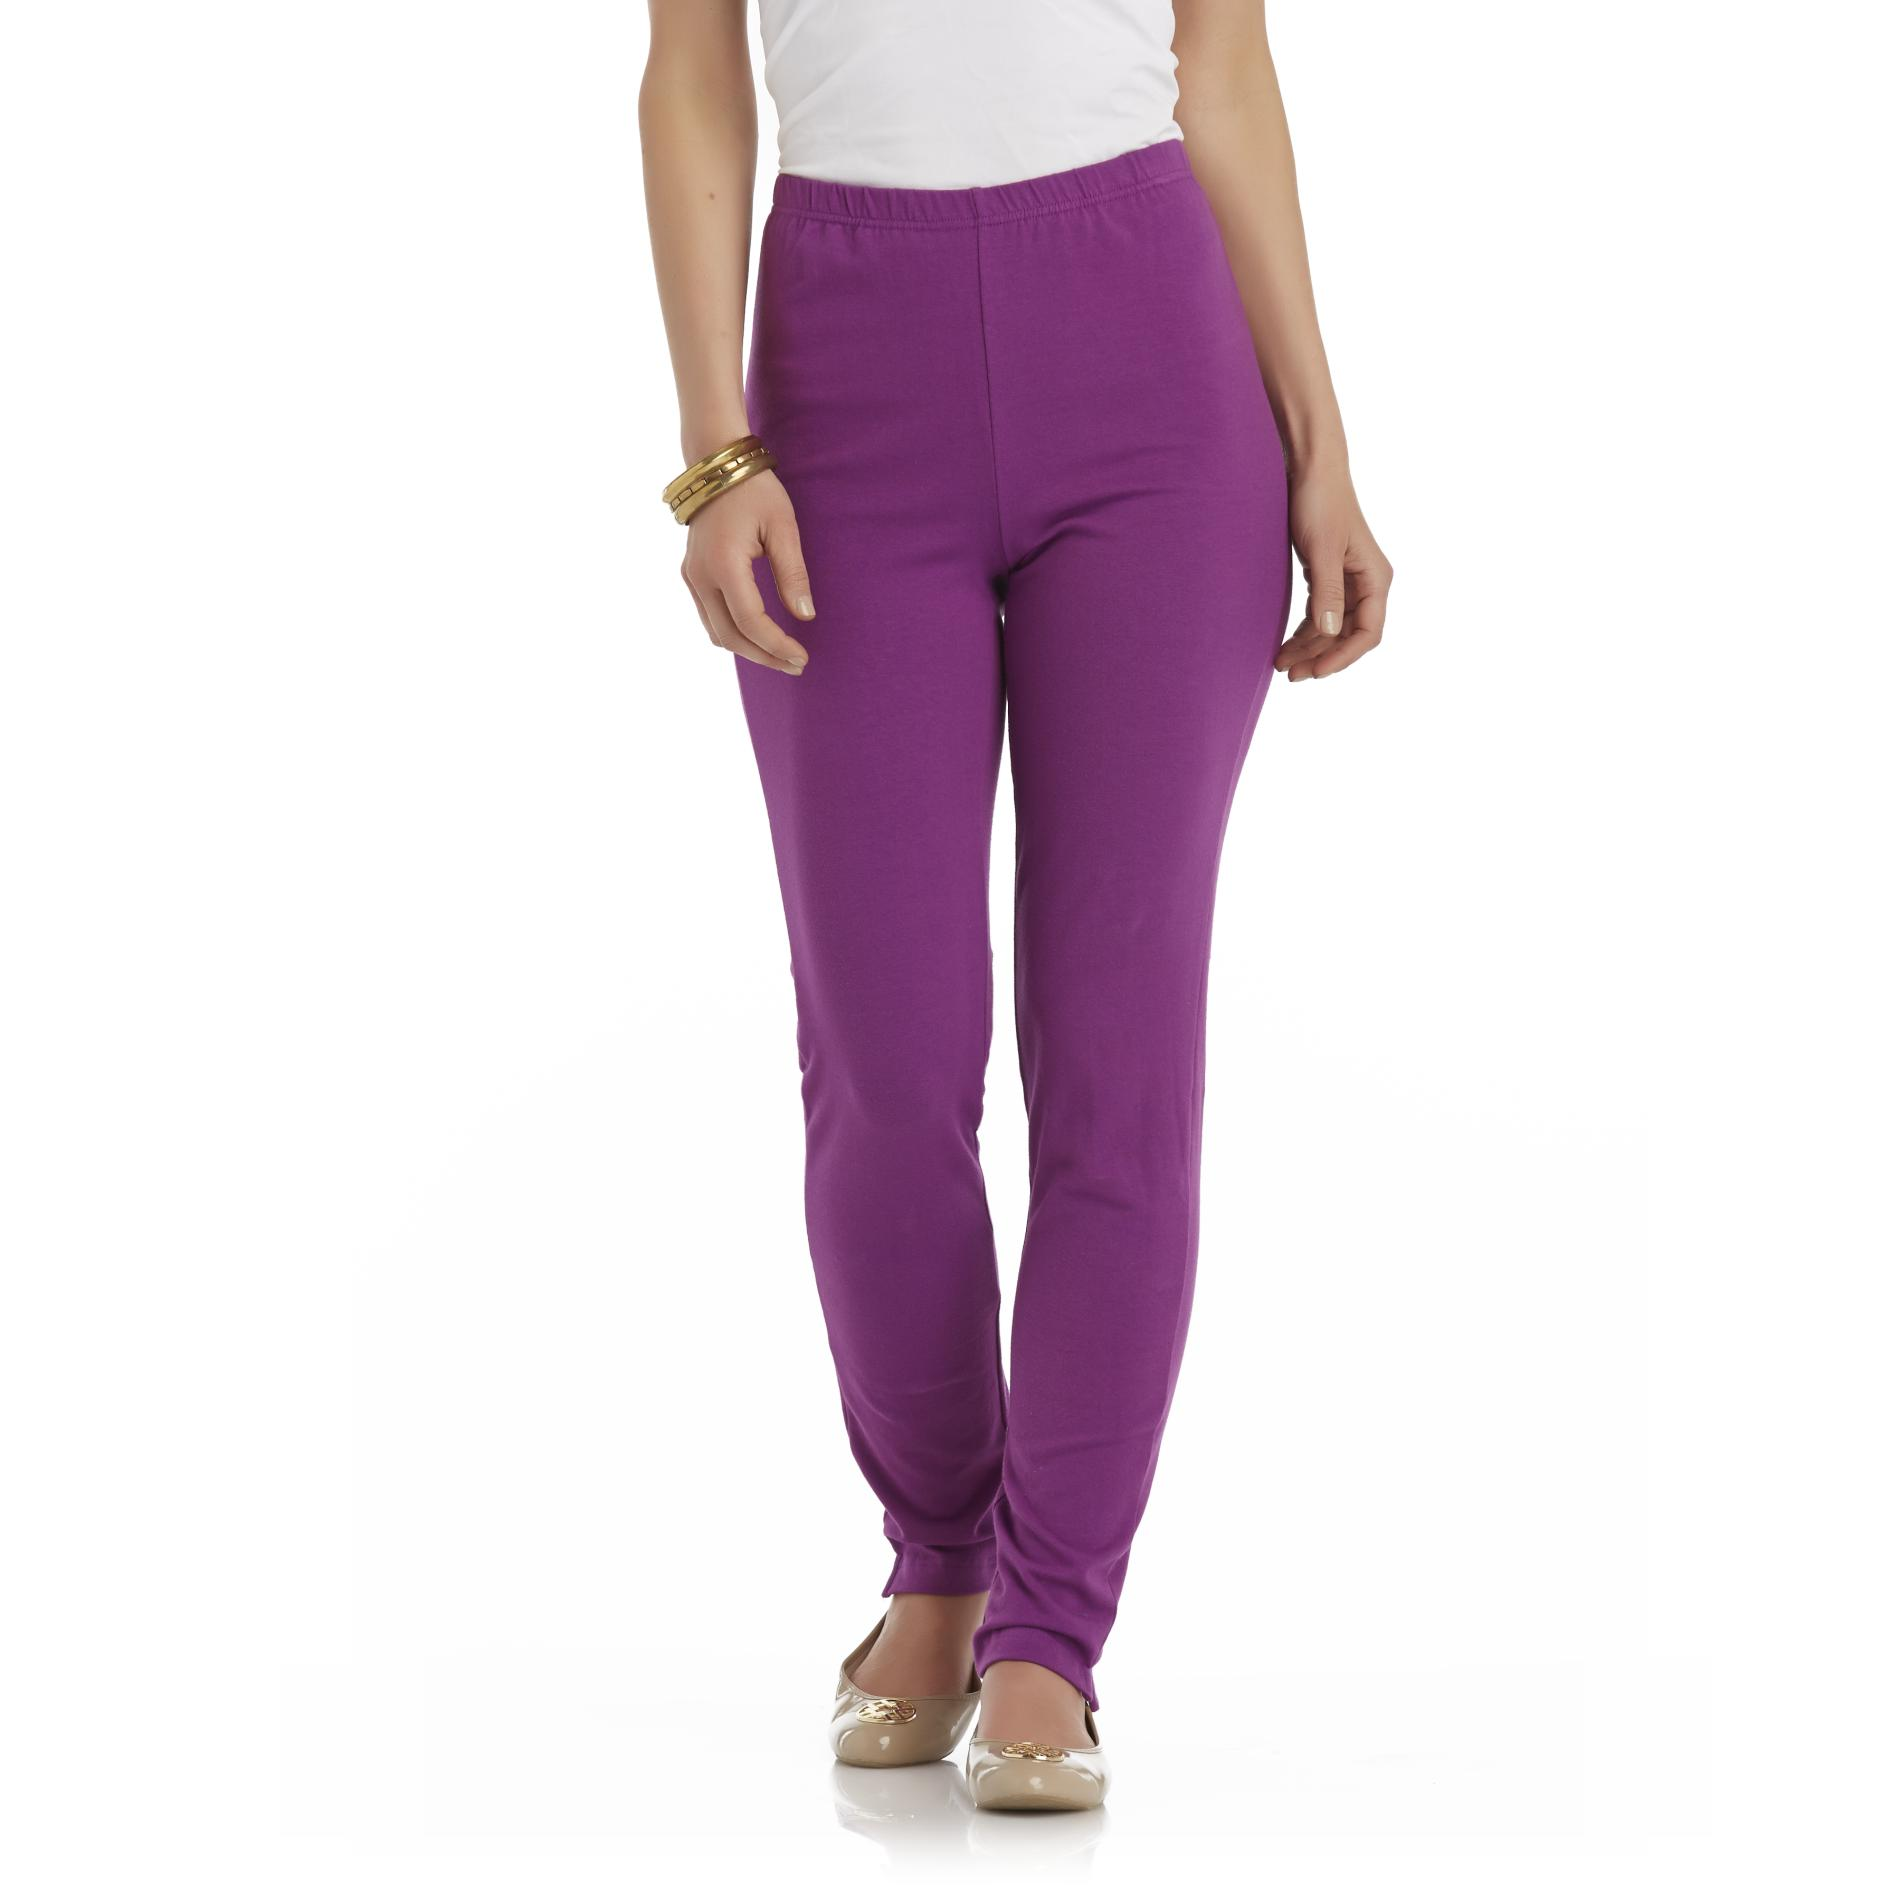 Basic Editions Women's Knit Leggings at Kmart.com